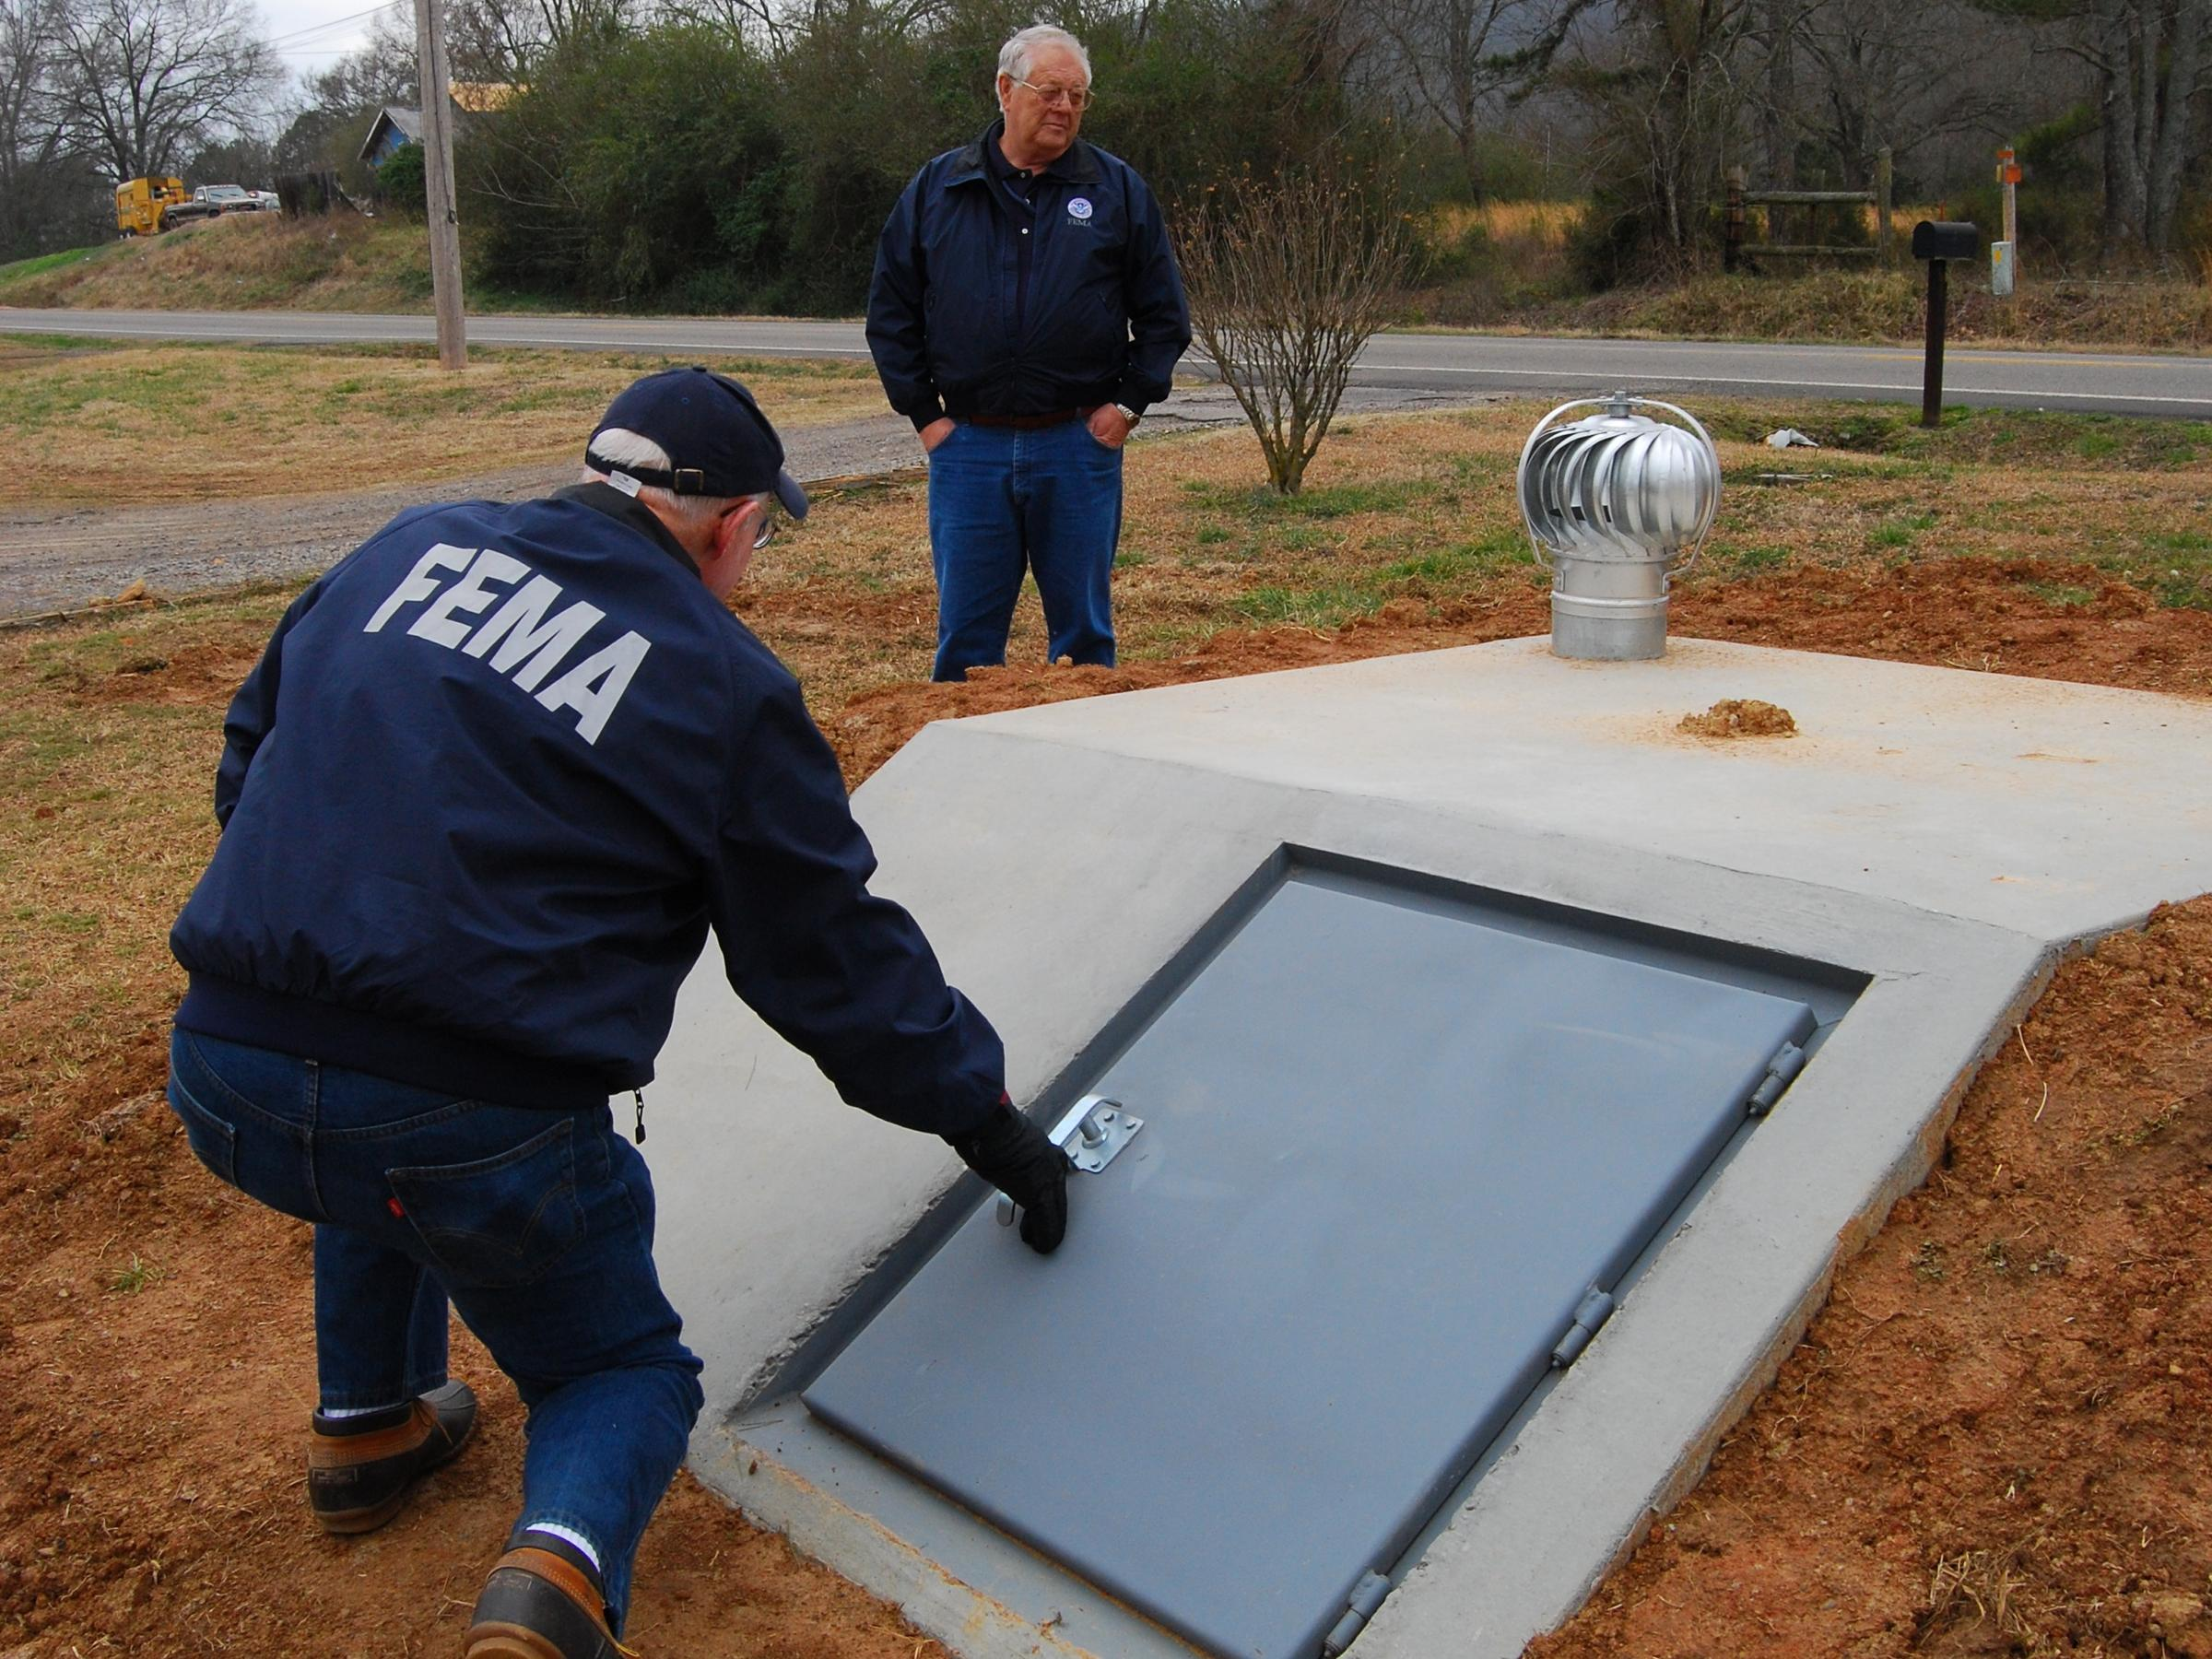 Applications To Build Storm Shelters Up